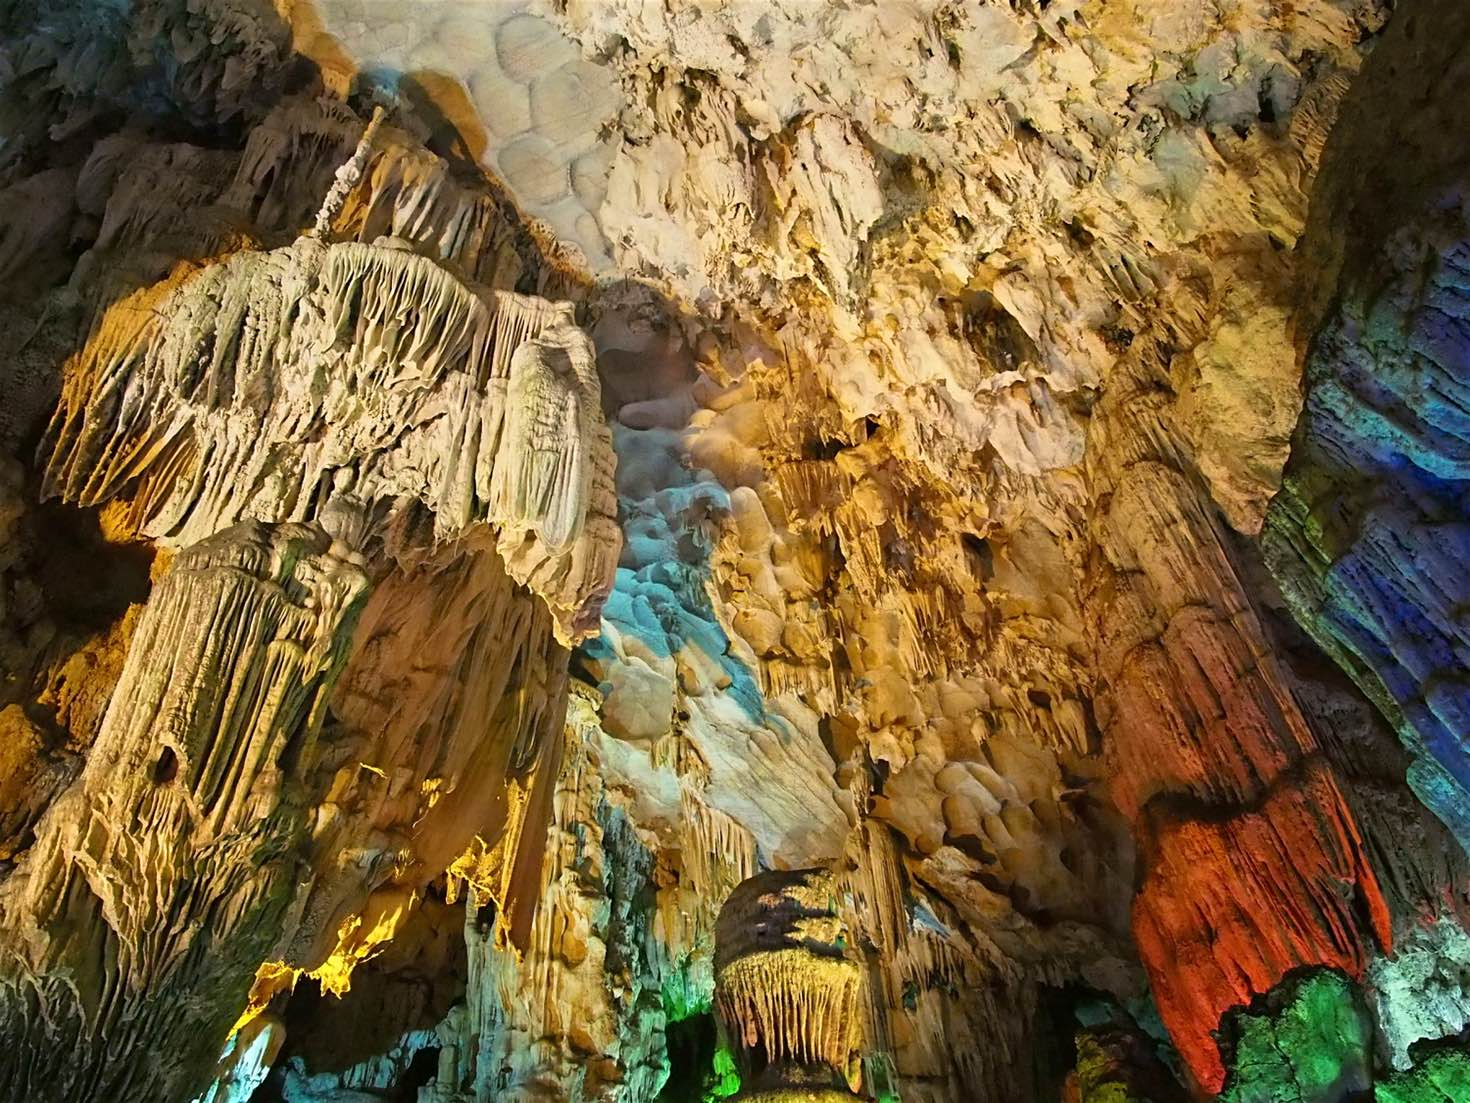 Limestone kart cave in Halong